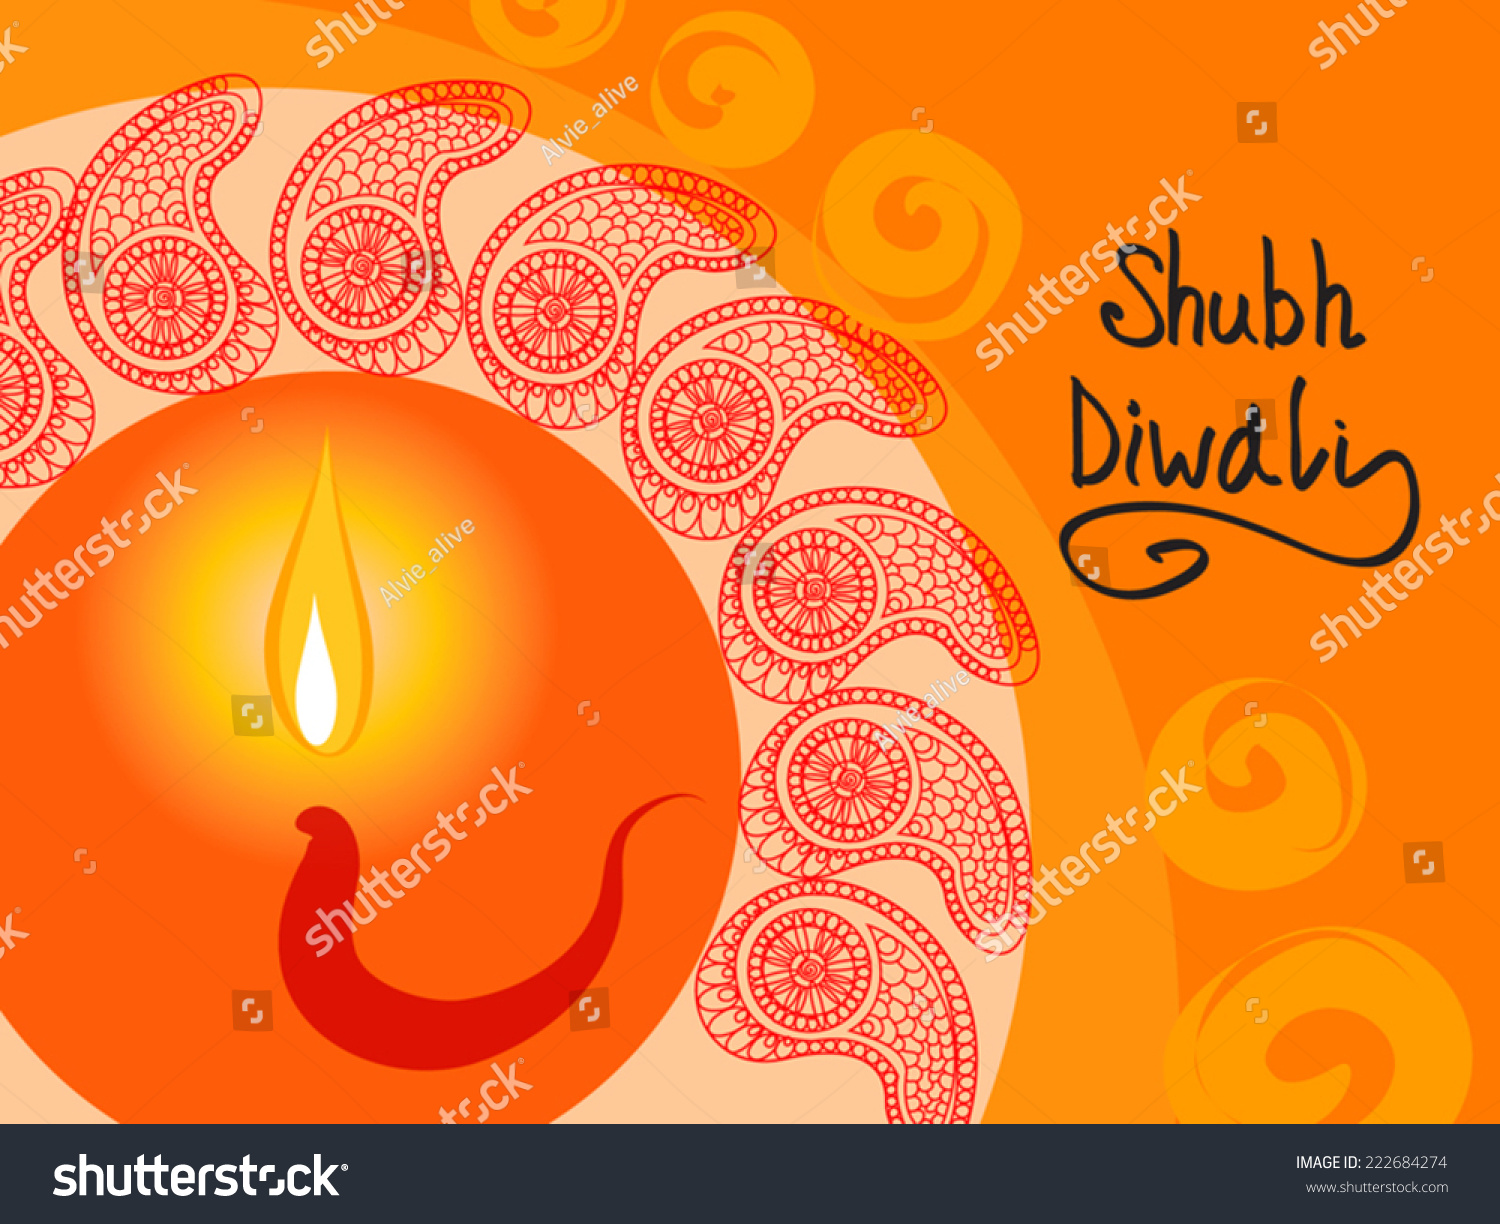 Beautiful Shubh Diwali Happy Diwali Greeting Stock Vector 222684274